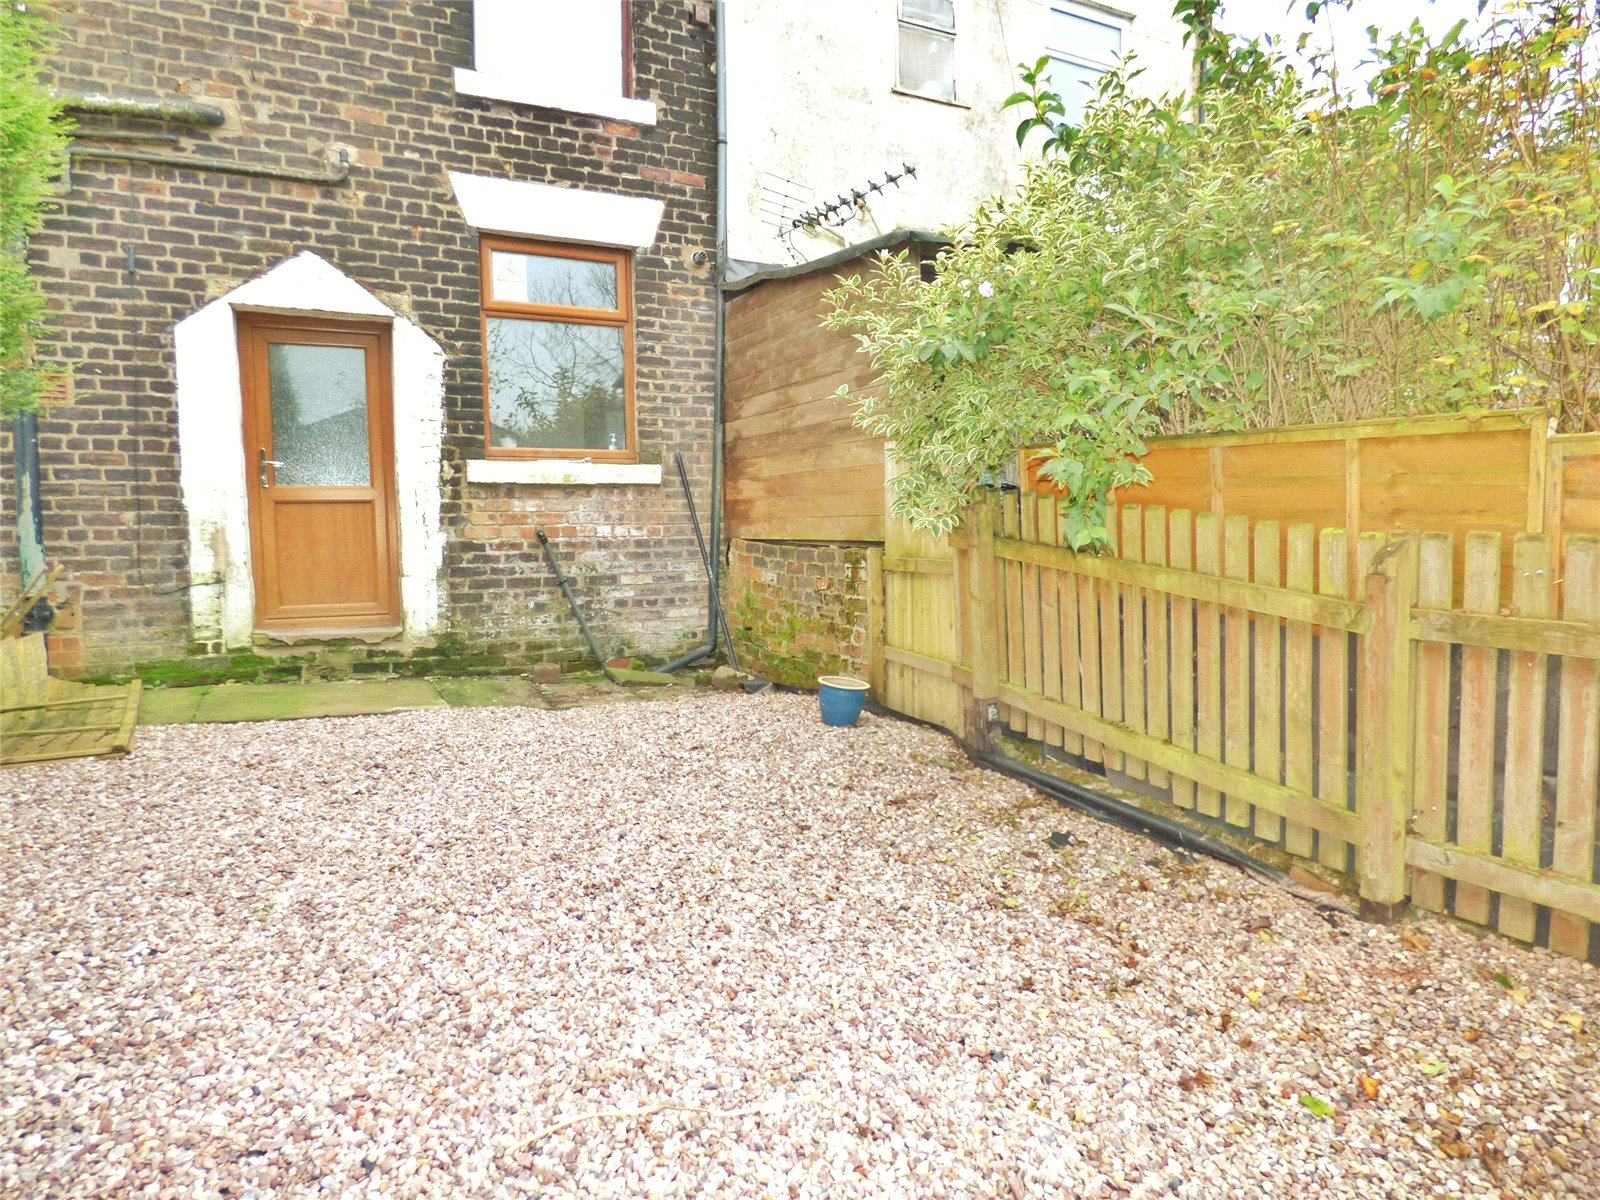 2 Bedrooms Terraced House for sale in Ripponden Road, Moorside, Oldham, Greater Manchester, OL1